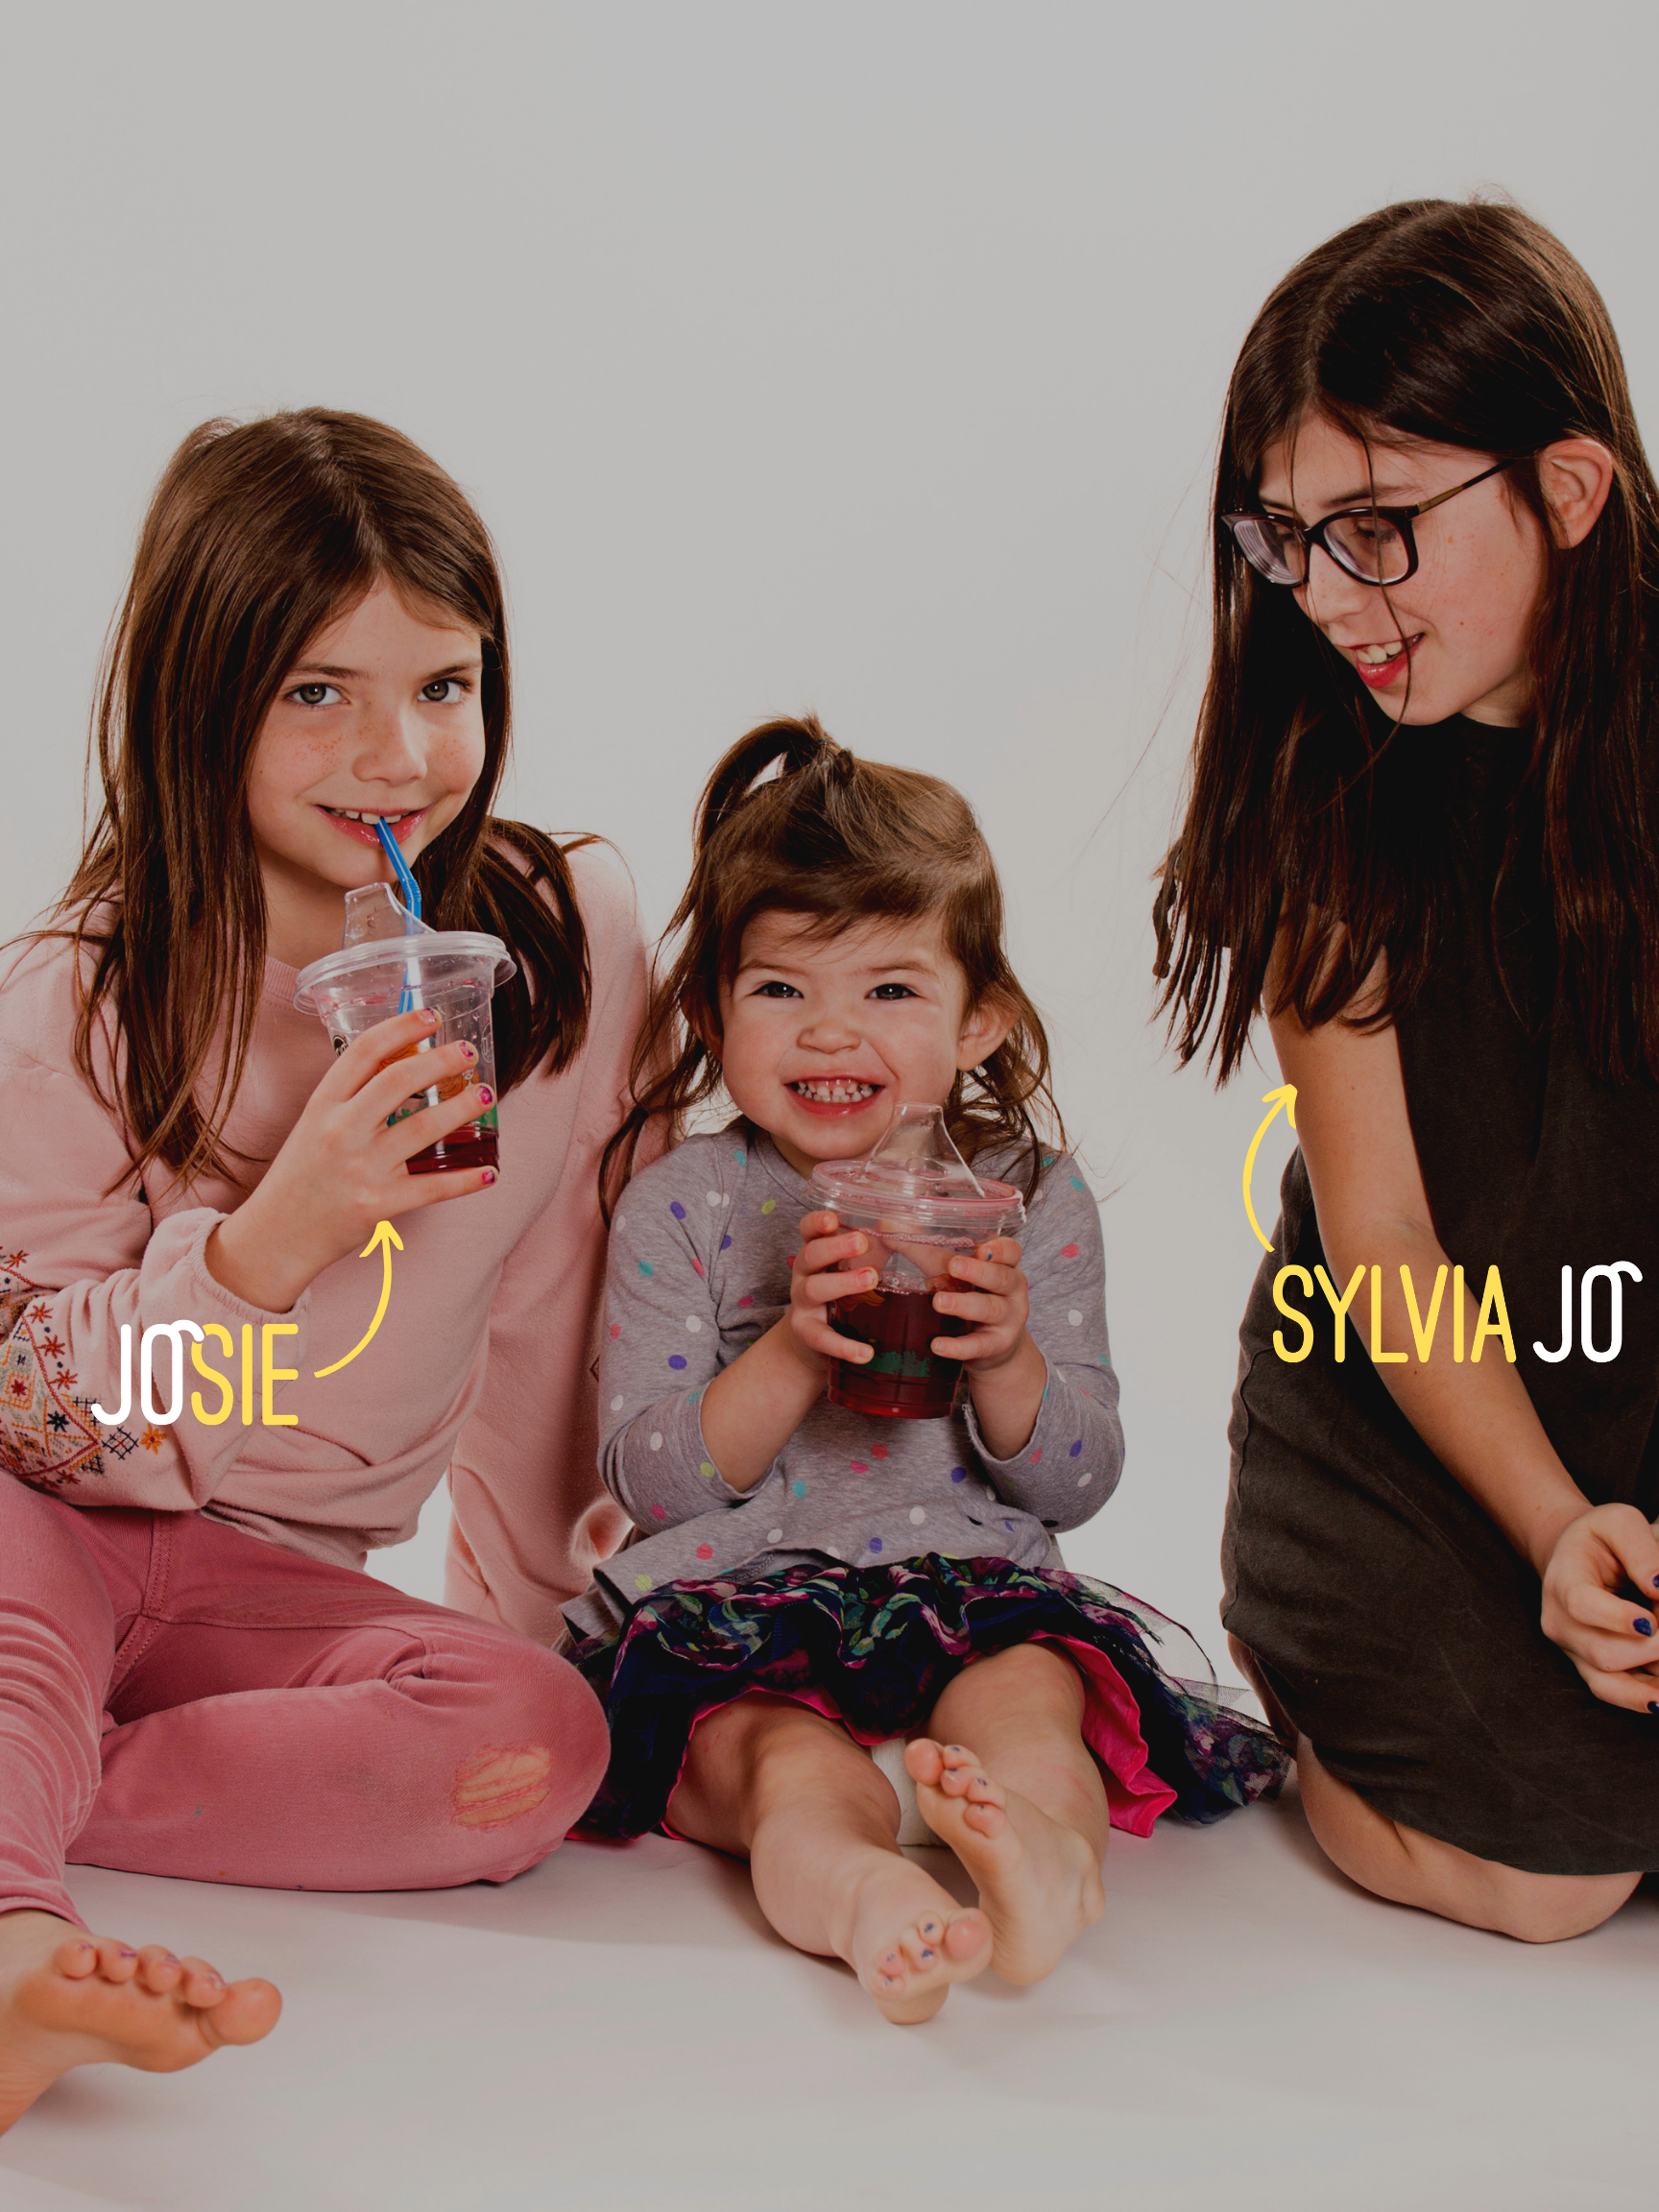 We get asked a lot… - Why JoJo Cups? Our founder is a mom of three beautiful girls. When she invented JoJo Cups, she had just two: Sylvia Jo and Josie. She wanted to honor her children, who support all her crazy business ideas, and look up to their mom as someone who teaches them they can be anything they want to be.